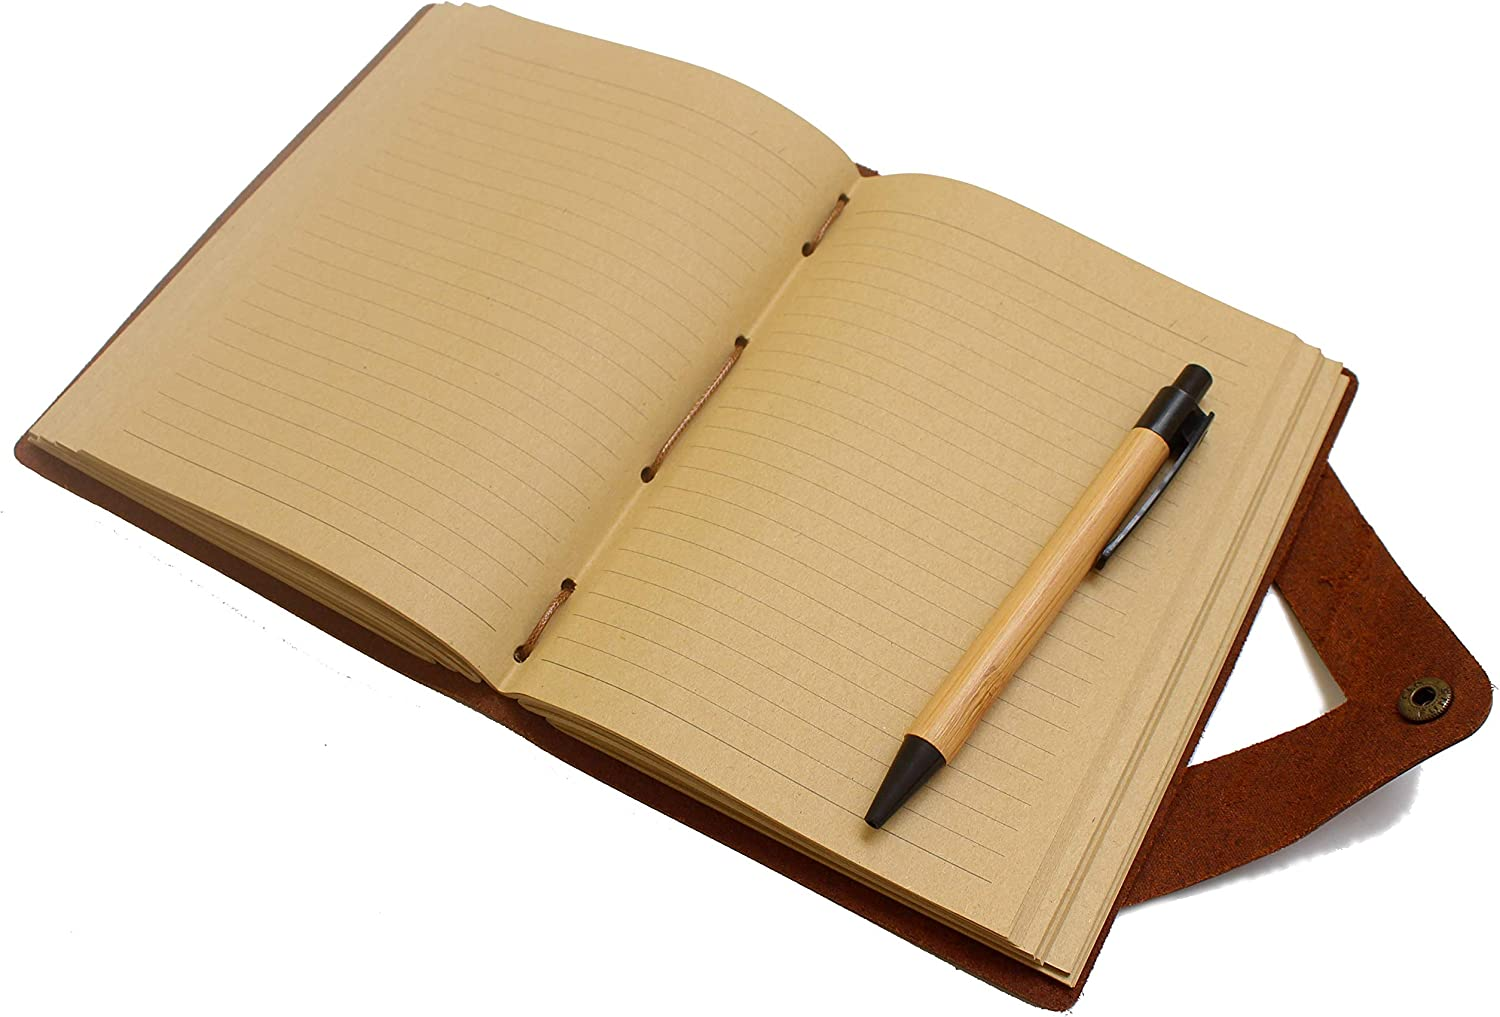 Bamboo Pen Included Vintage Classic Gift for Men Women Handmade Journal 100GSM Lined Kraft Paper 5/×7 Inches Brown Genuine Leather Writing Notebook